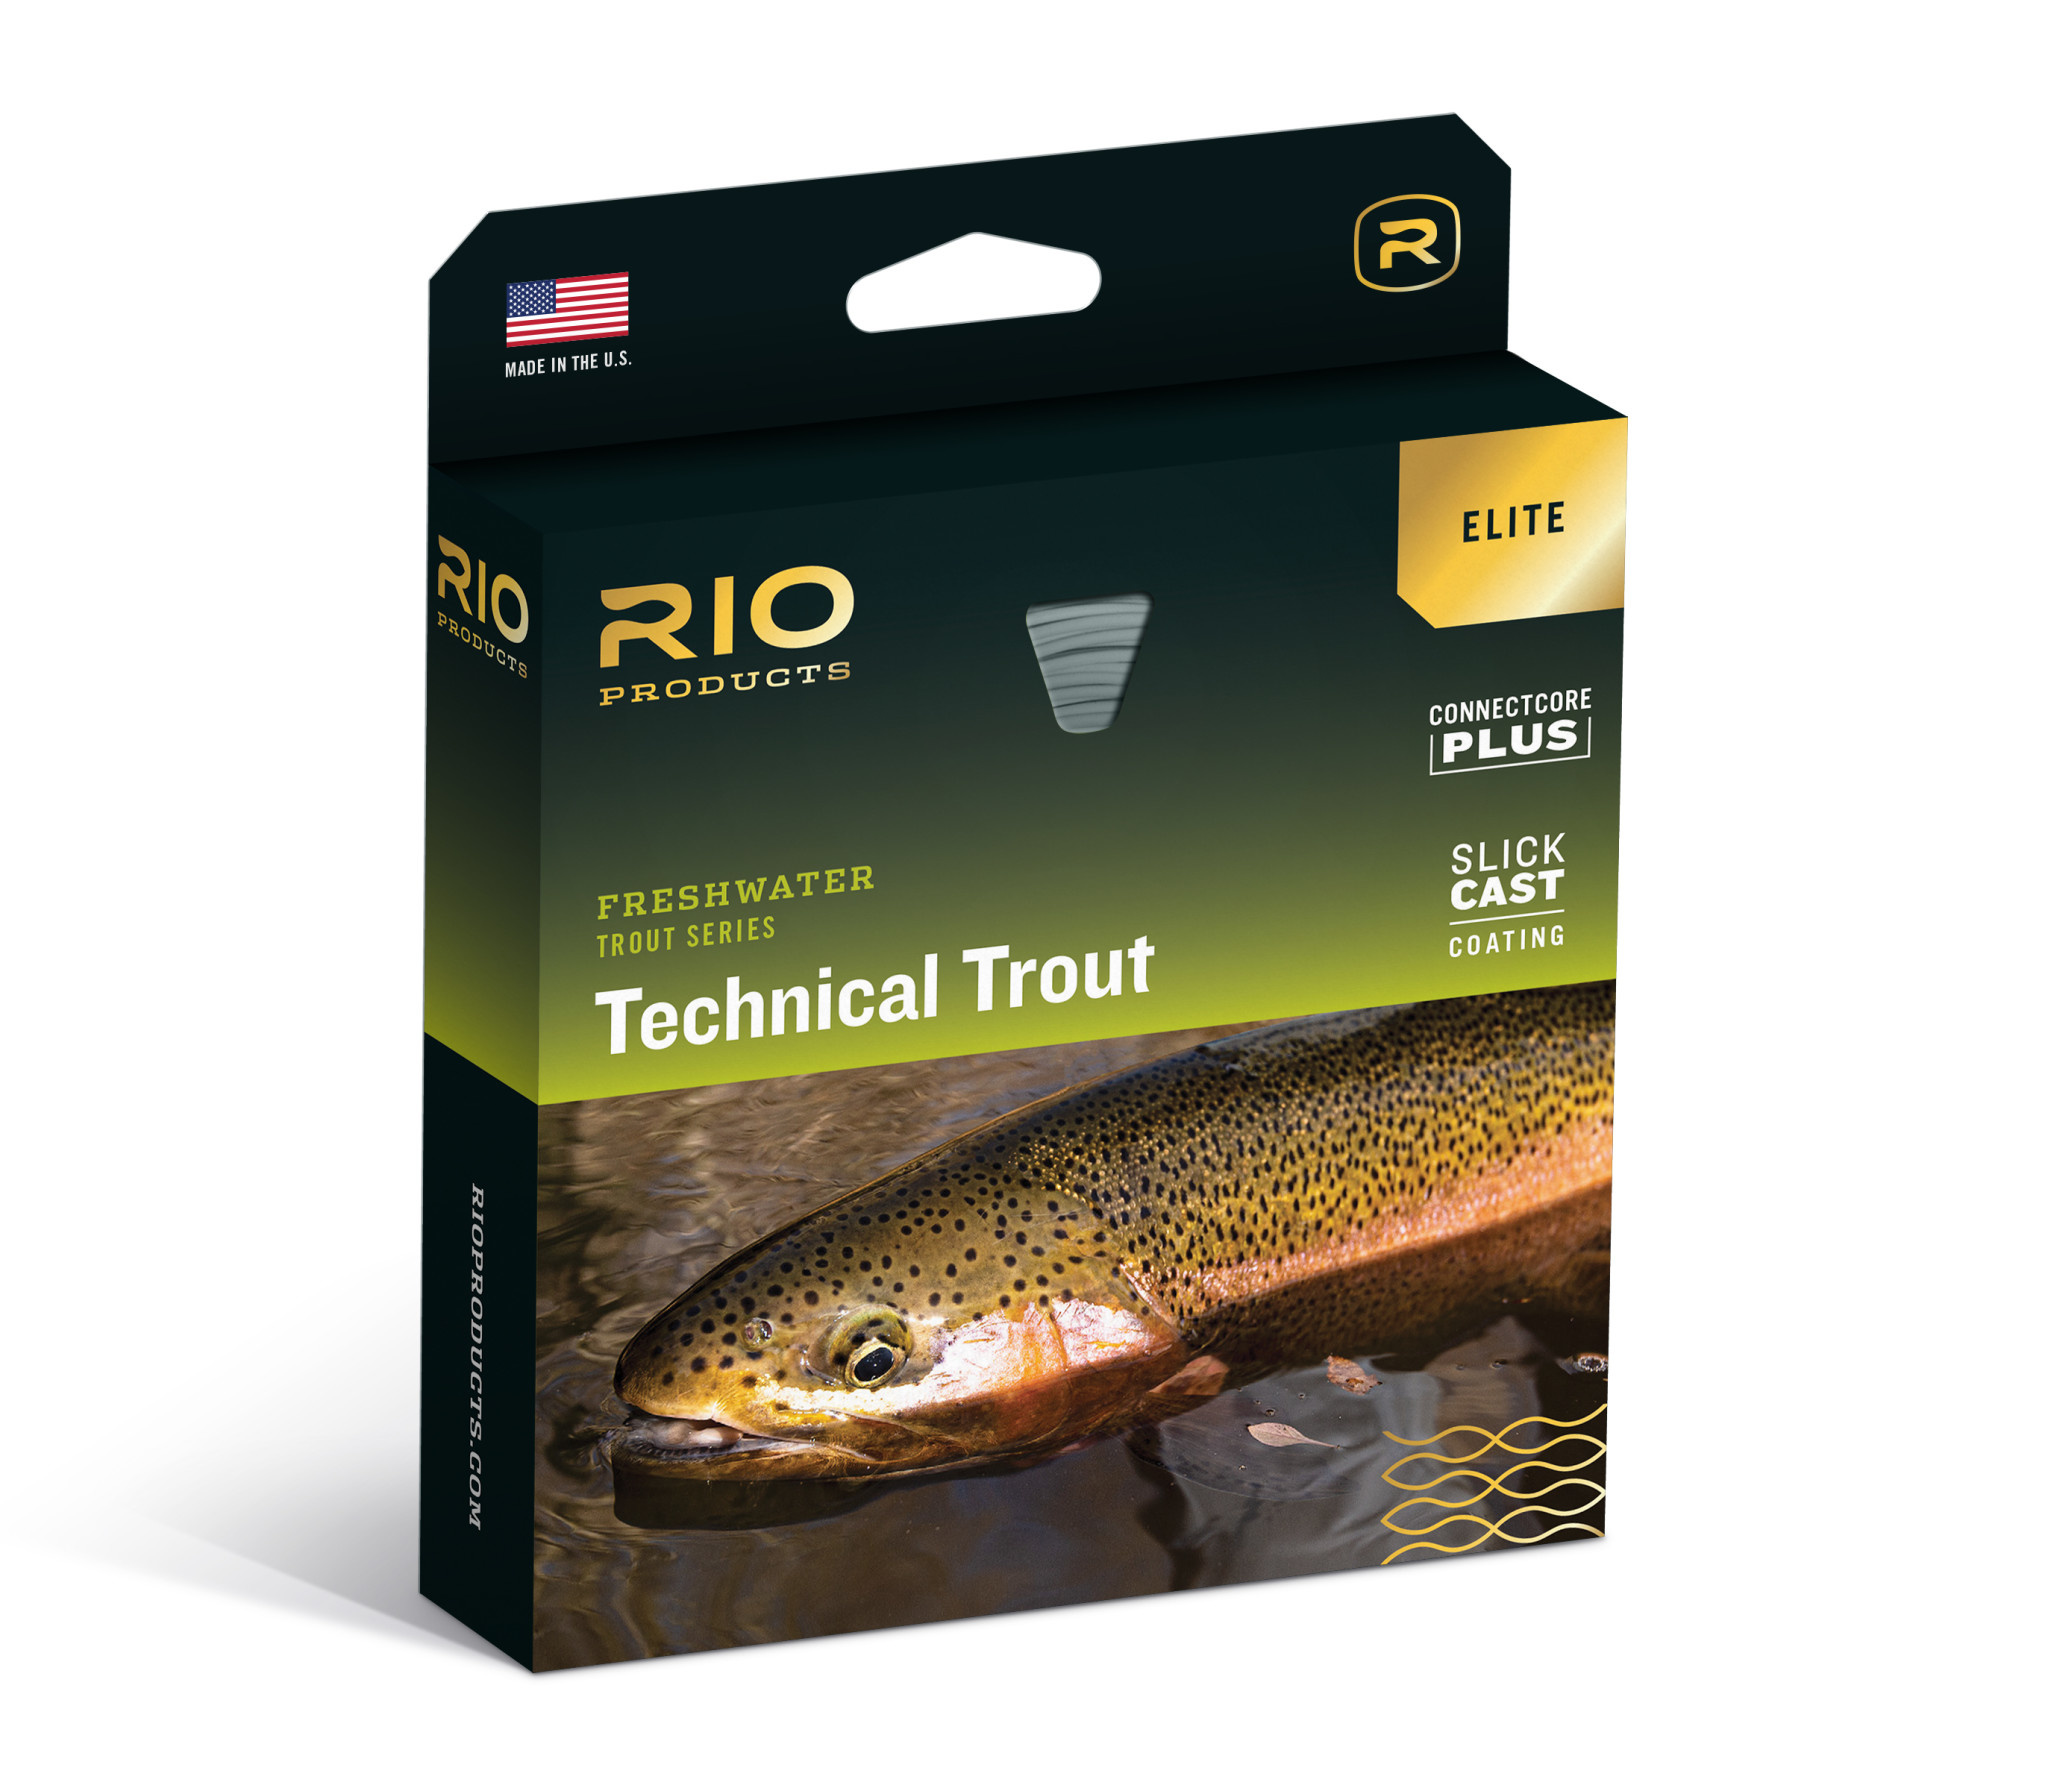 Rio Technical Trout Elite Fly Line